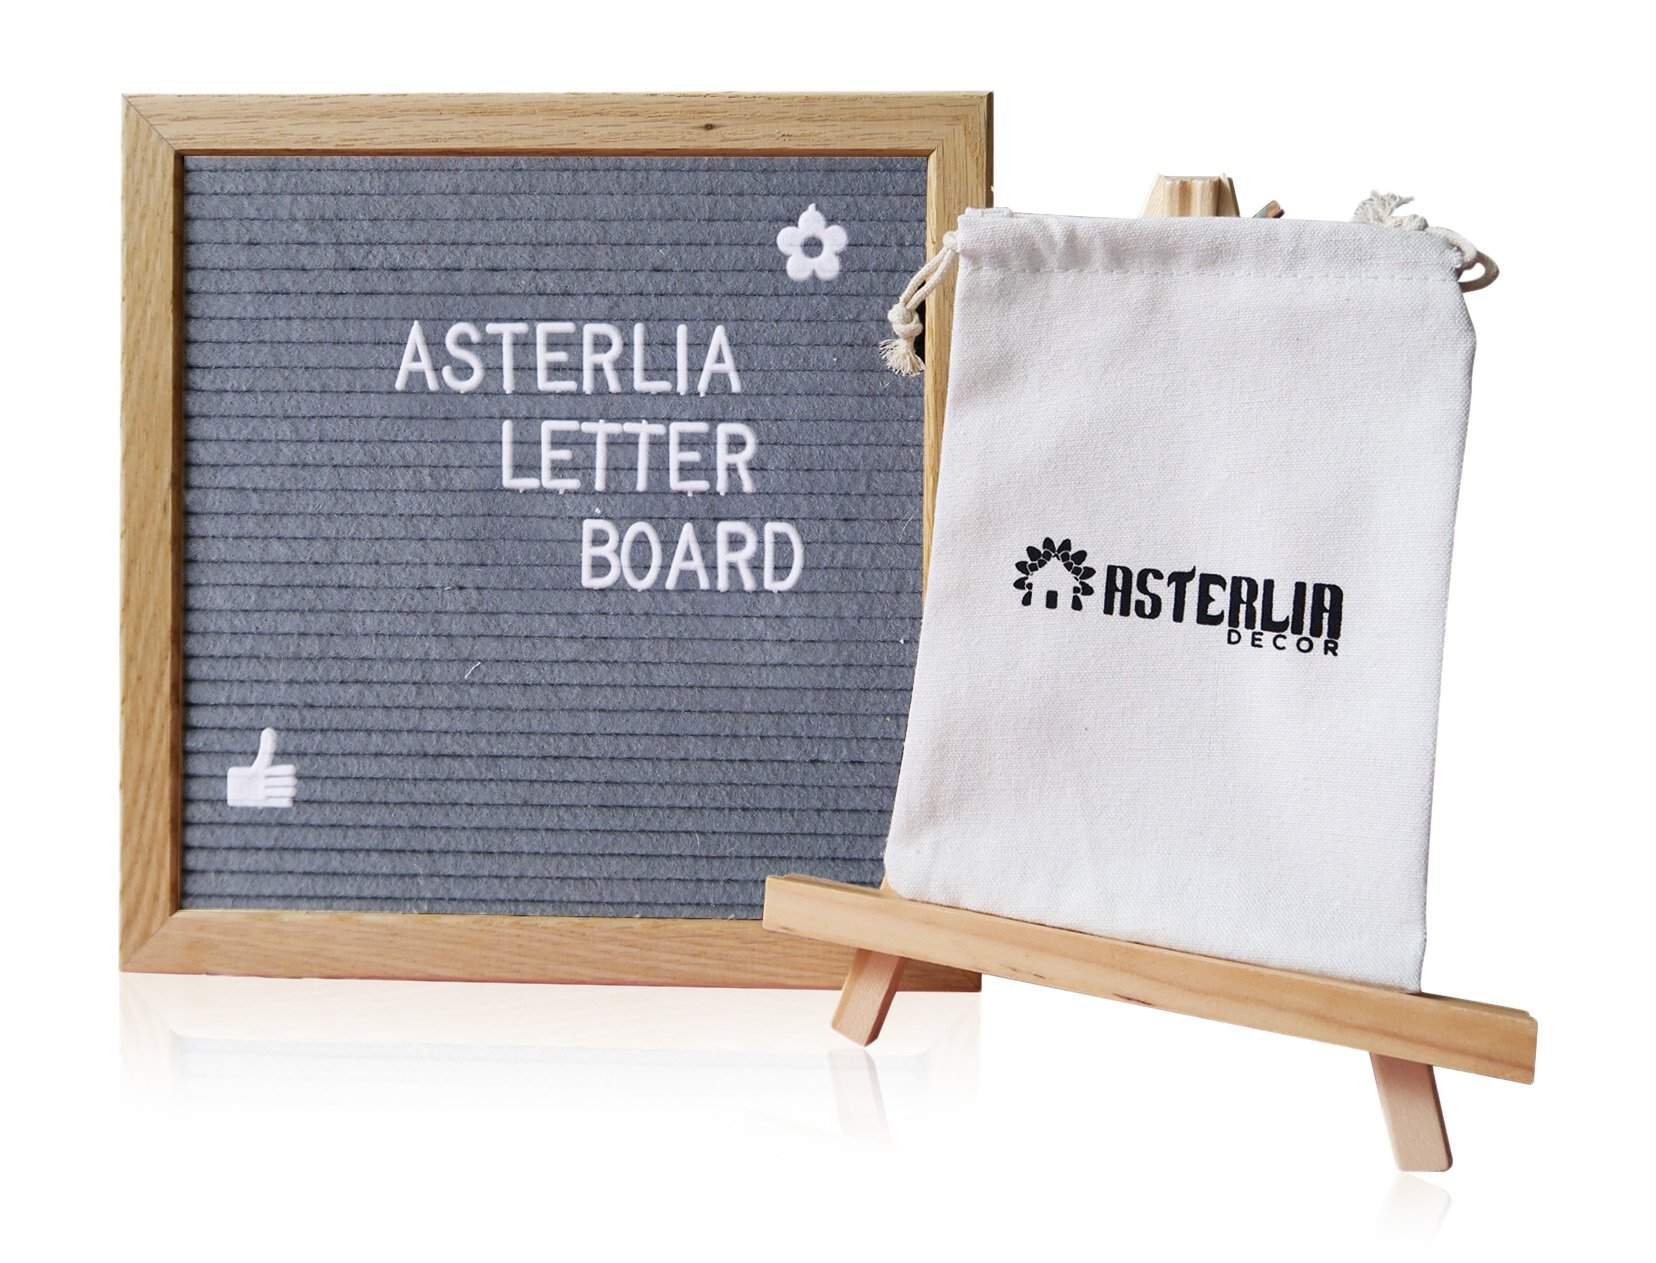 Felt Letter Board Sign Set Gray- 10x10 Inches Oak Frame, 374 Pieces Alphabets, Numbers & Symbols, Wood Stand Easel, and Canvas Bag- Display Personalized Messages Creatively- Asterlia Decor